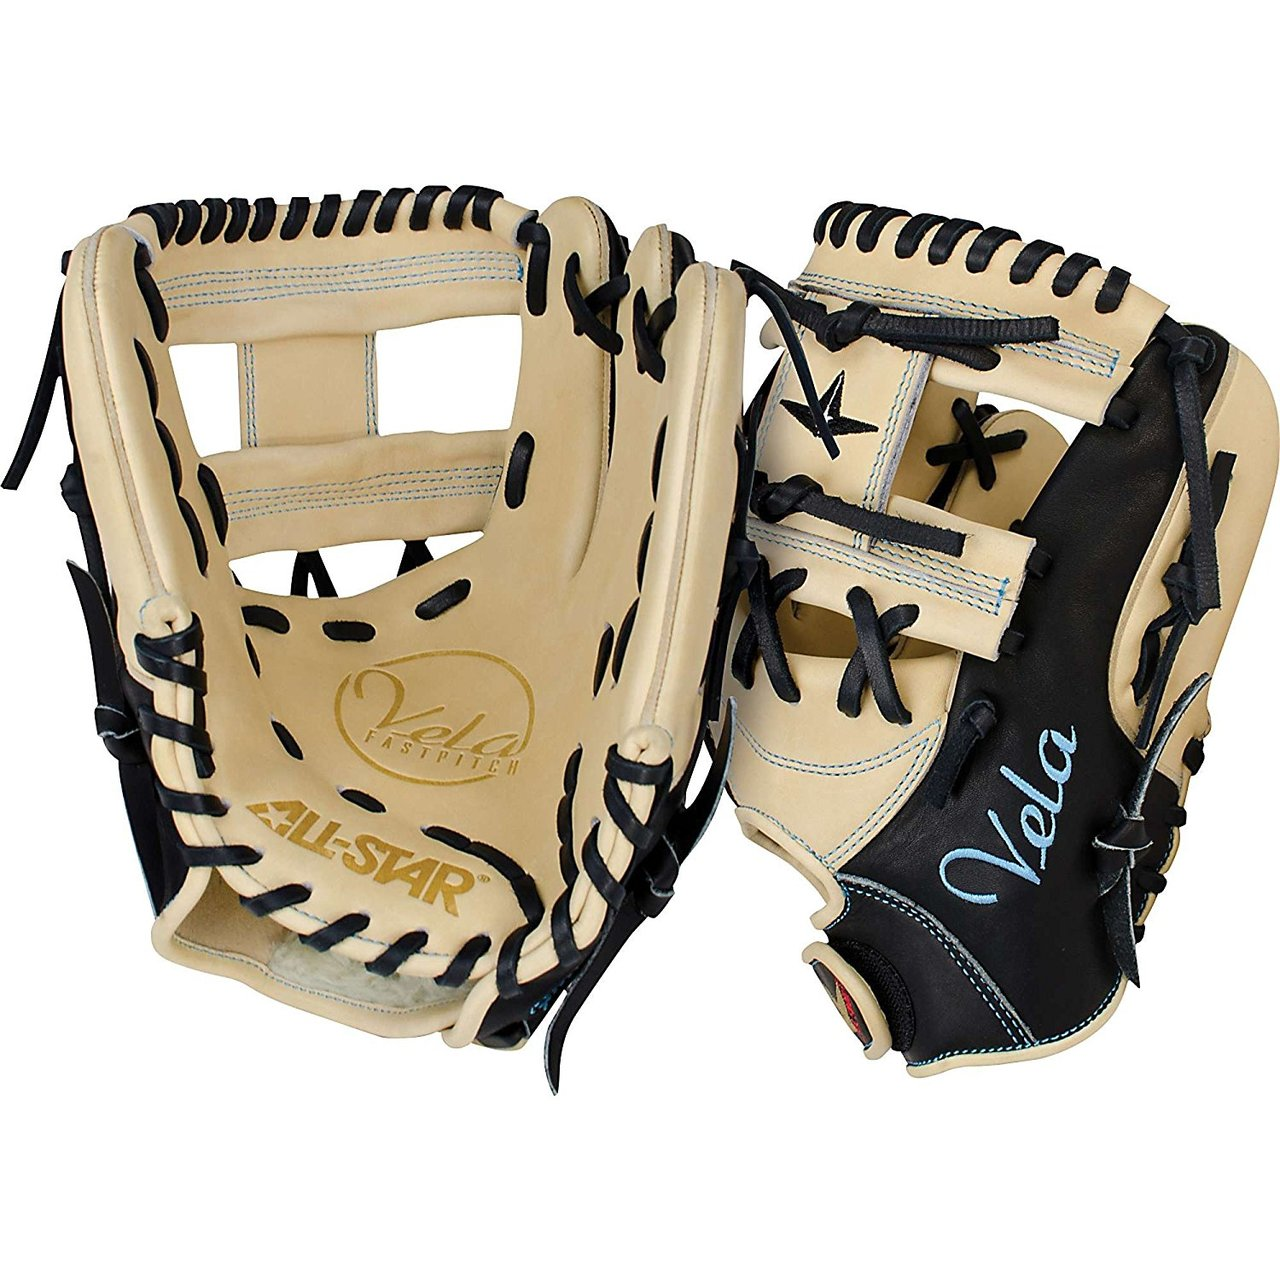 all-star-fgsbv-115-fastpitch-softball-glove-11-5-right-hand-thrower FGSBV-115-RightHandThrow All-Star 029343030413 The Vela 3 Finger series from All-Star features a massive fielding